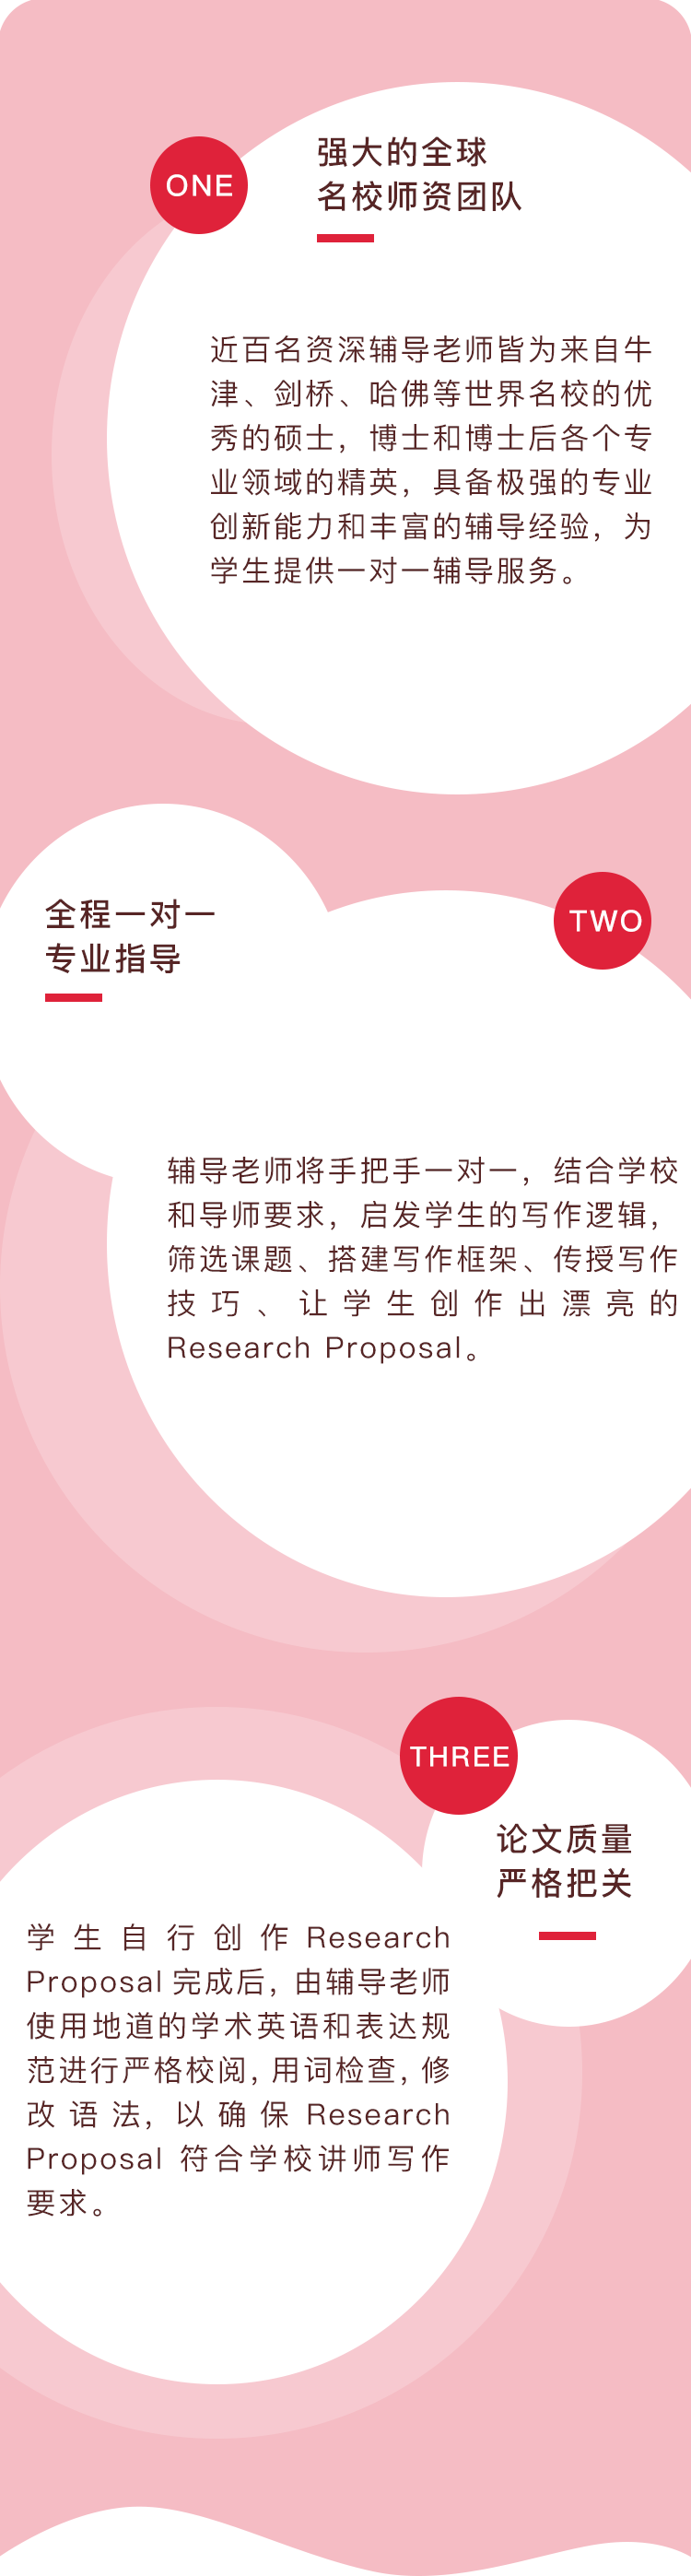 Research Proposal专项优势.png